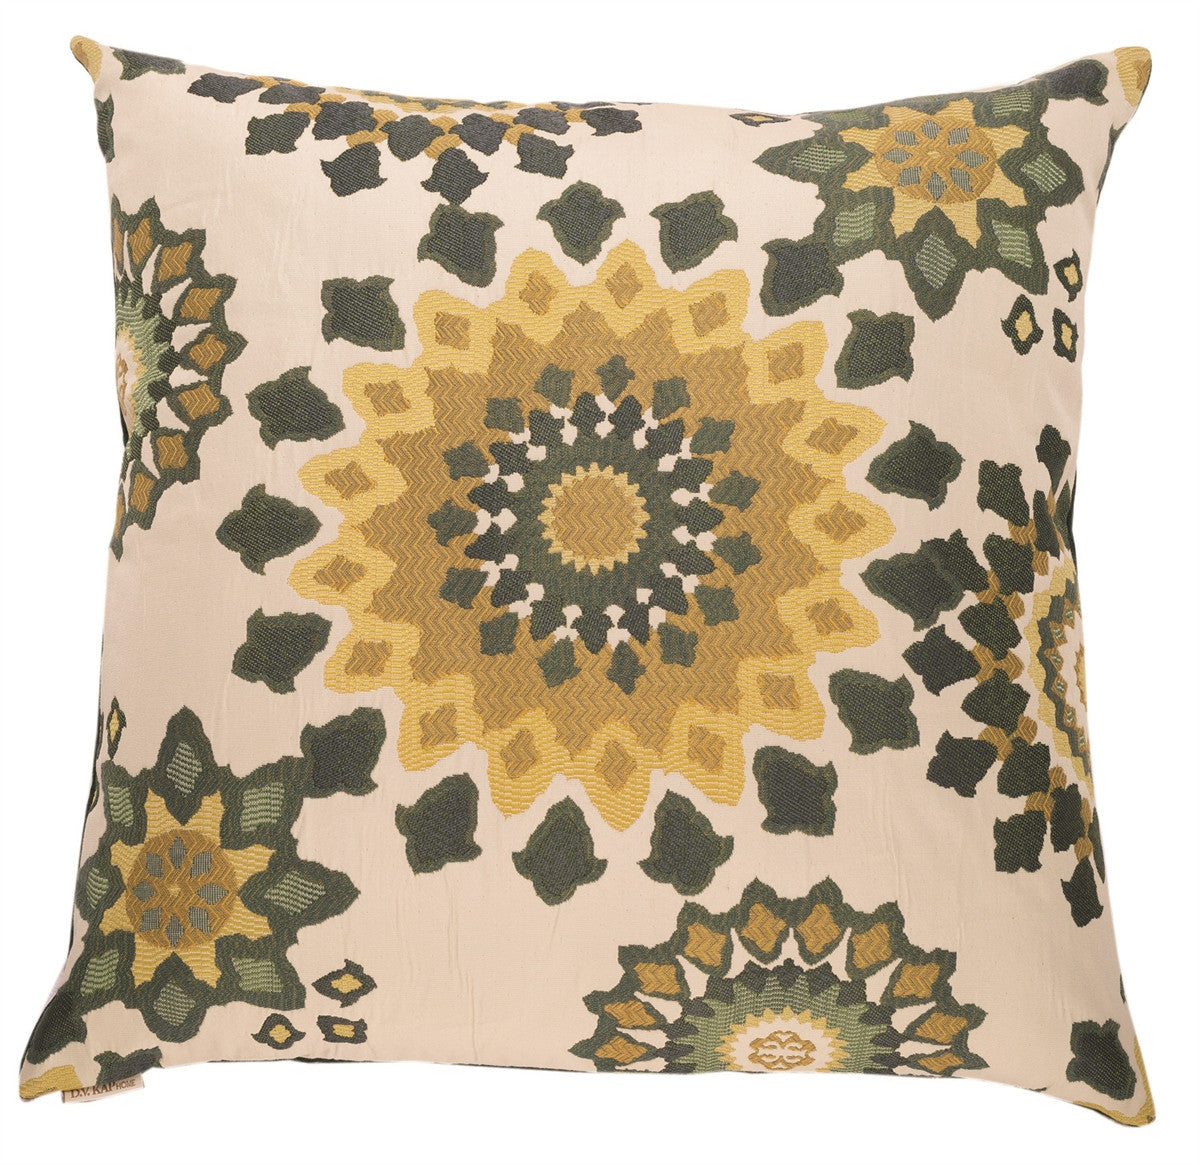 DV Kap Home - Marais Toss Pillow